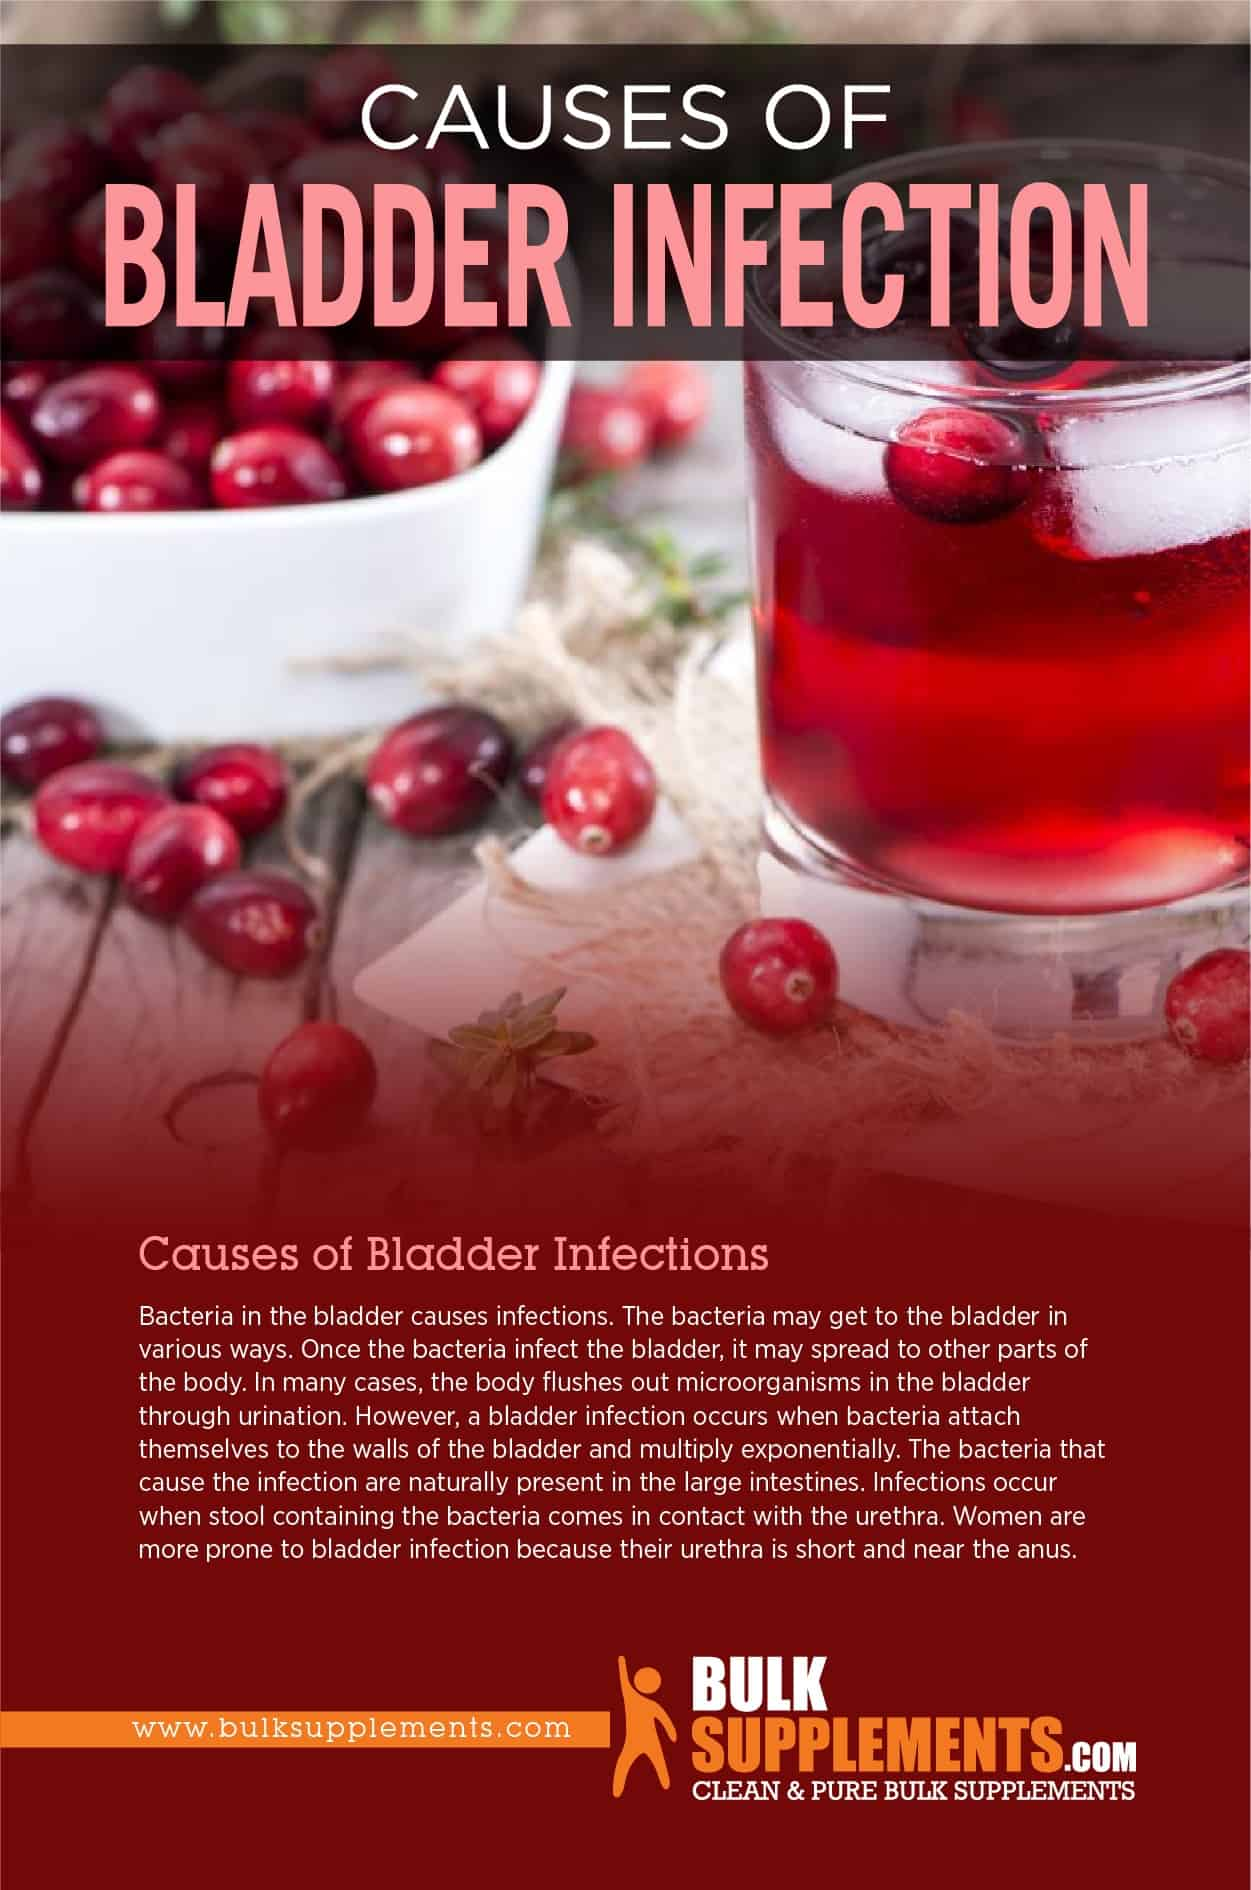 Causes of Bladder Infections